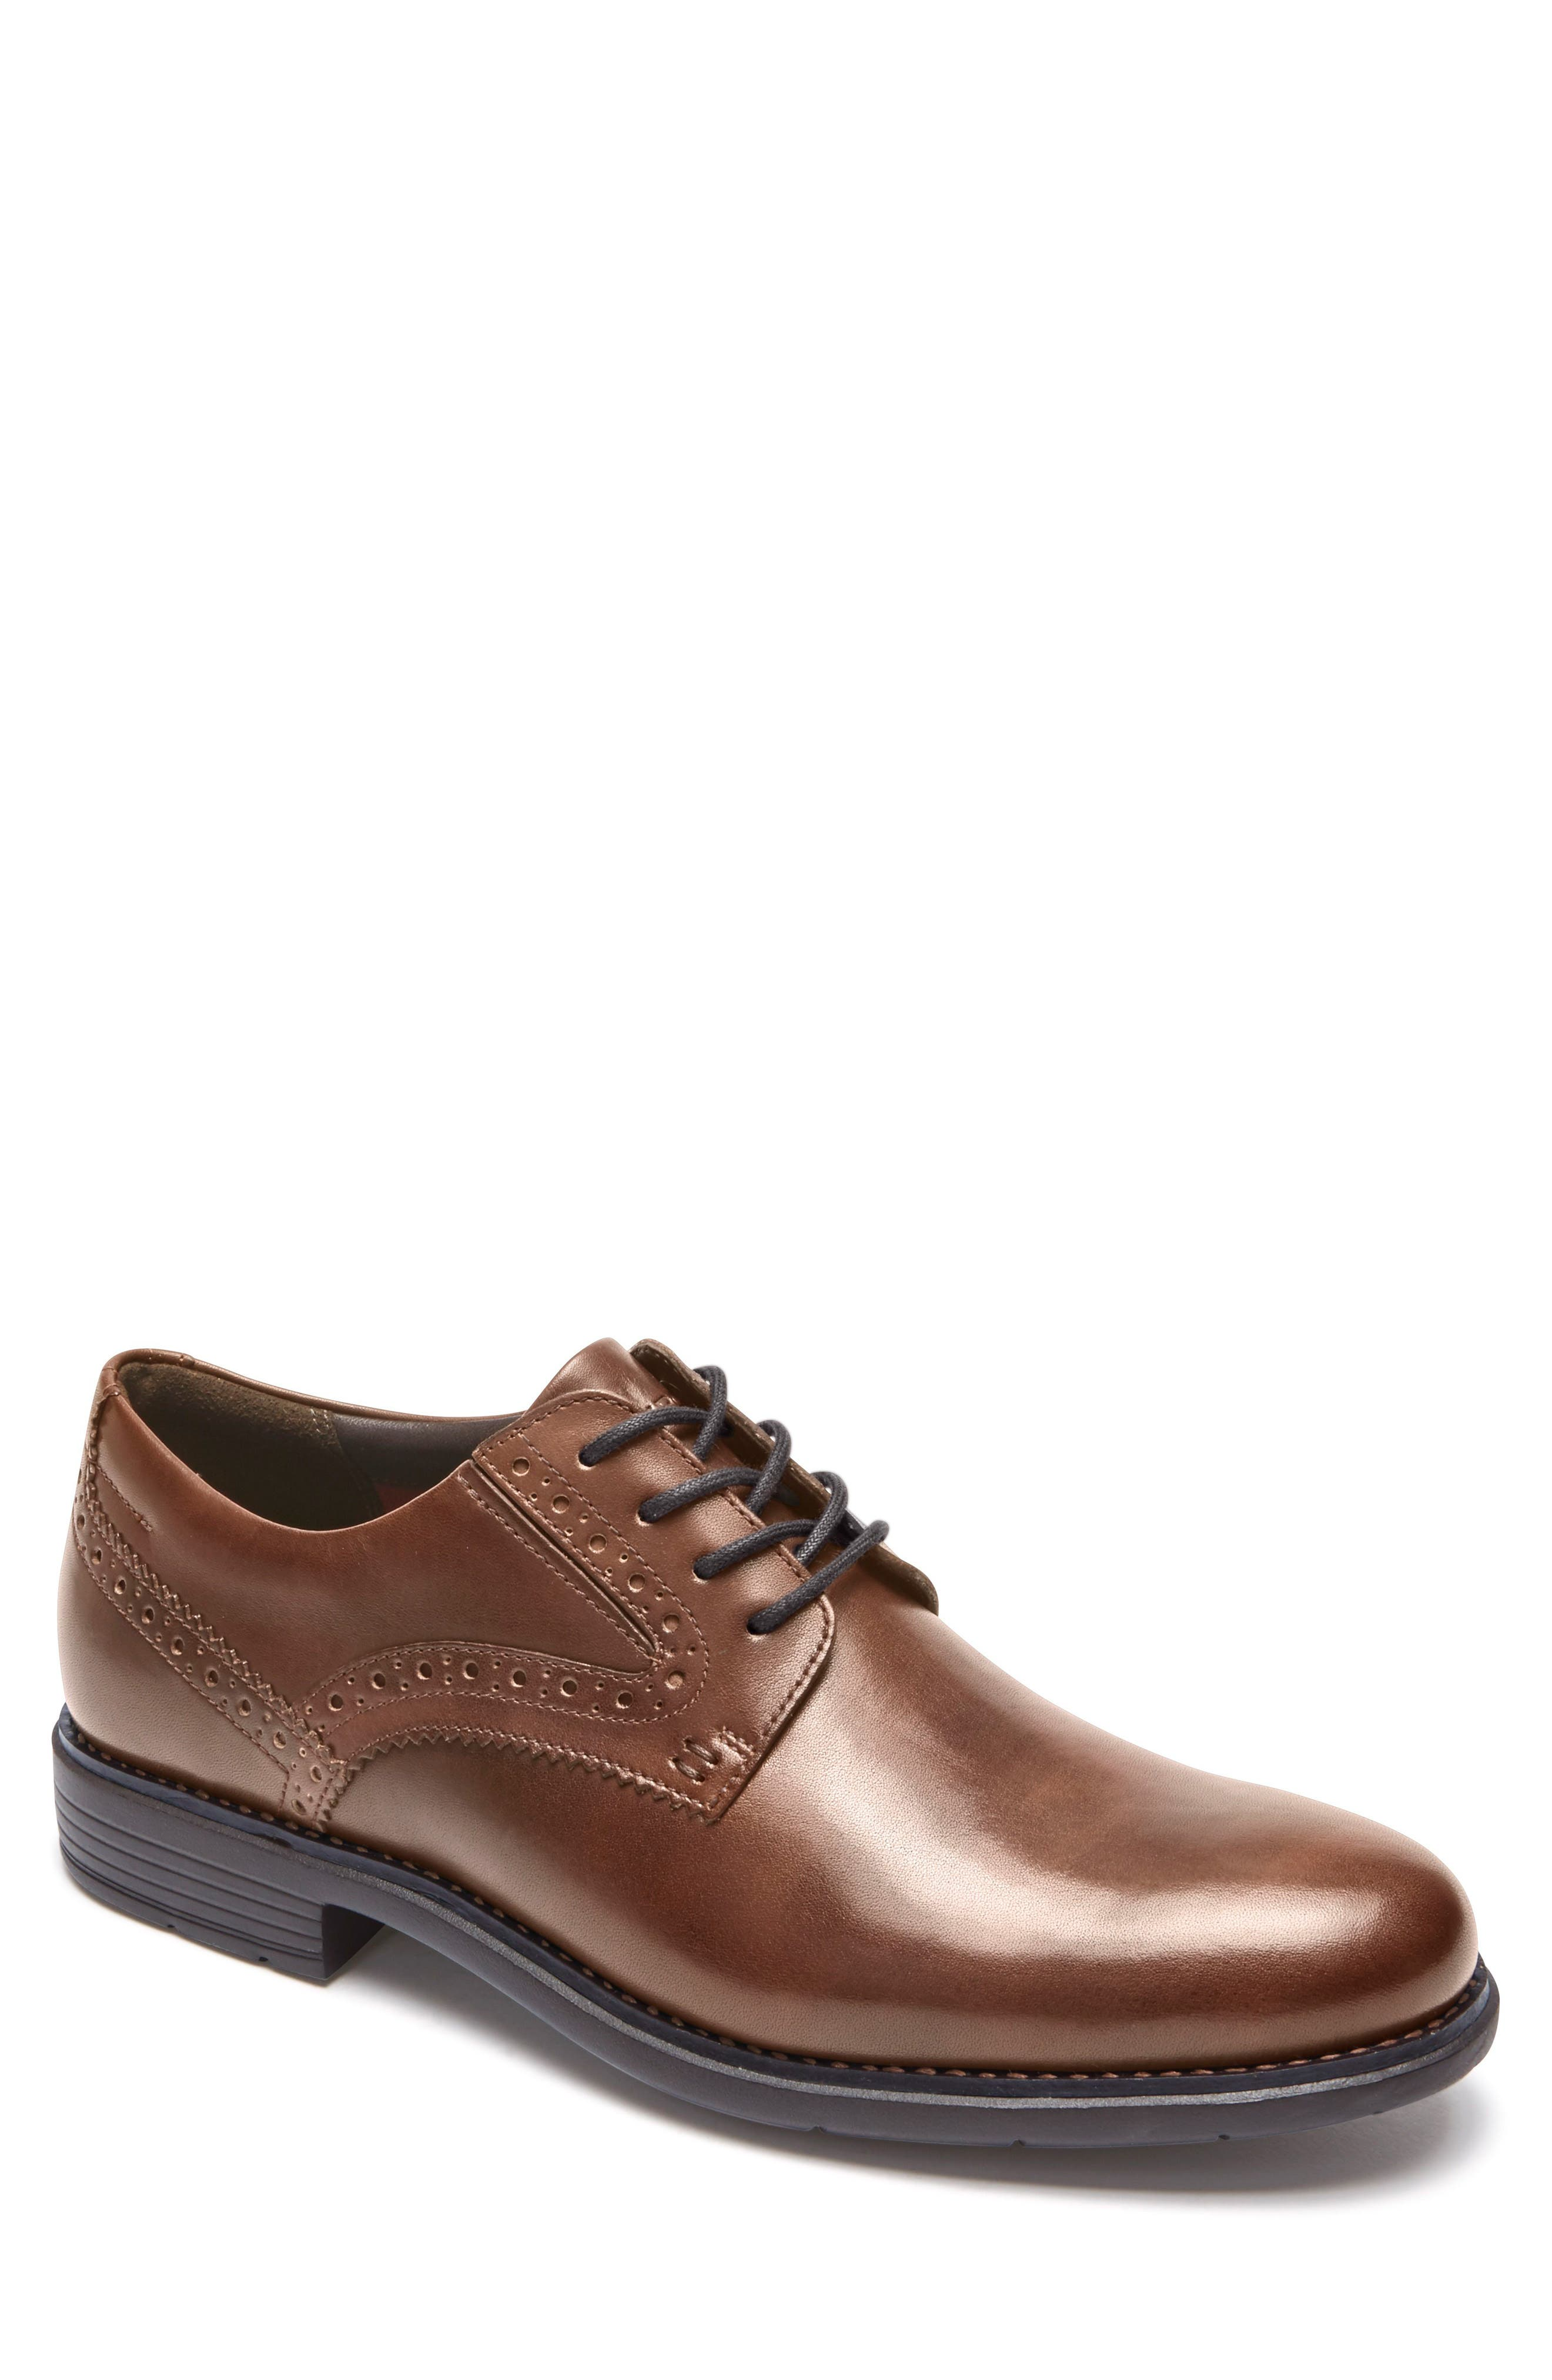 Total Motion Classic Plain Toe Derby,                         Main,                         color, NEW BROWN LEATHER